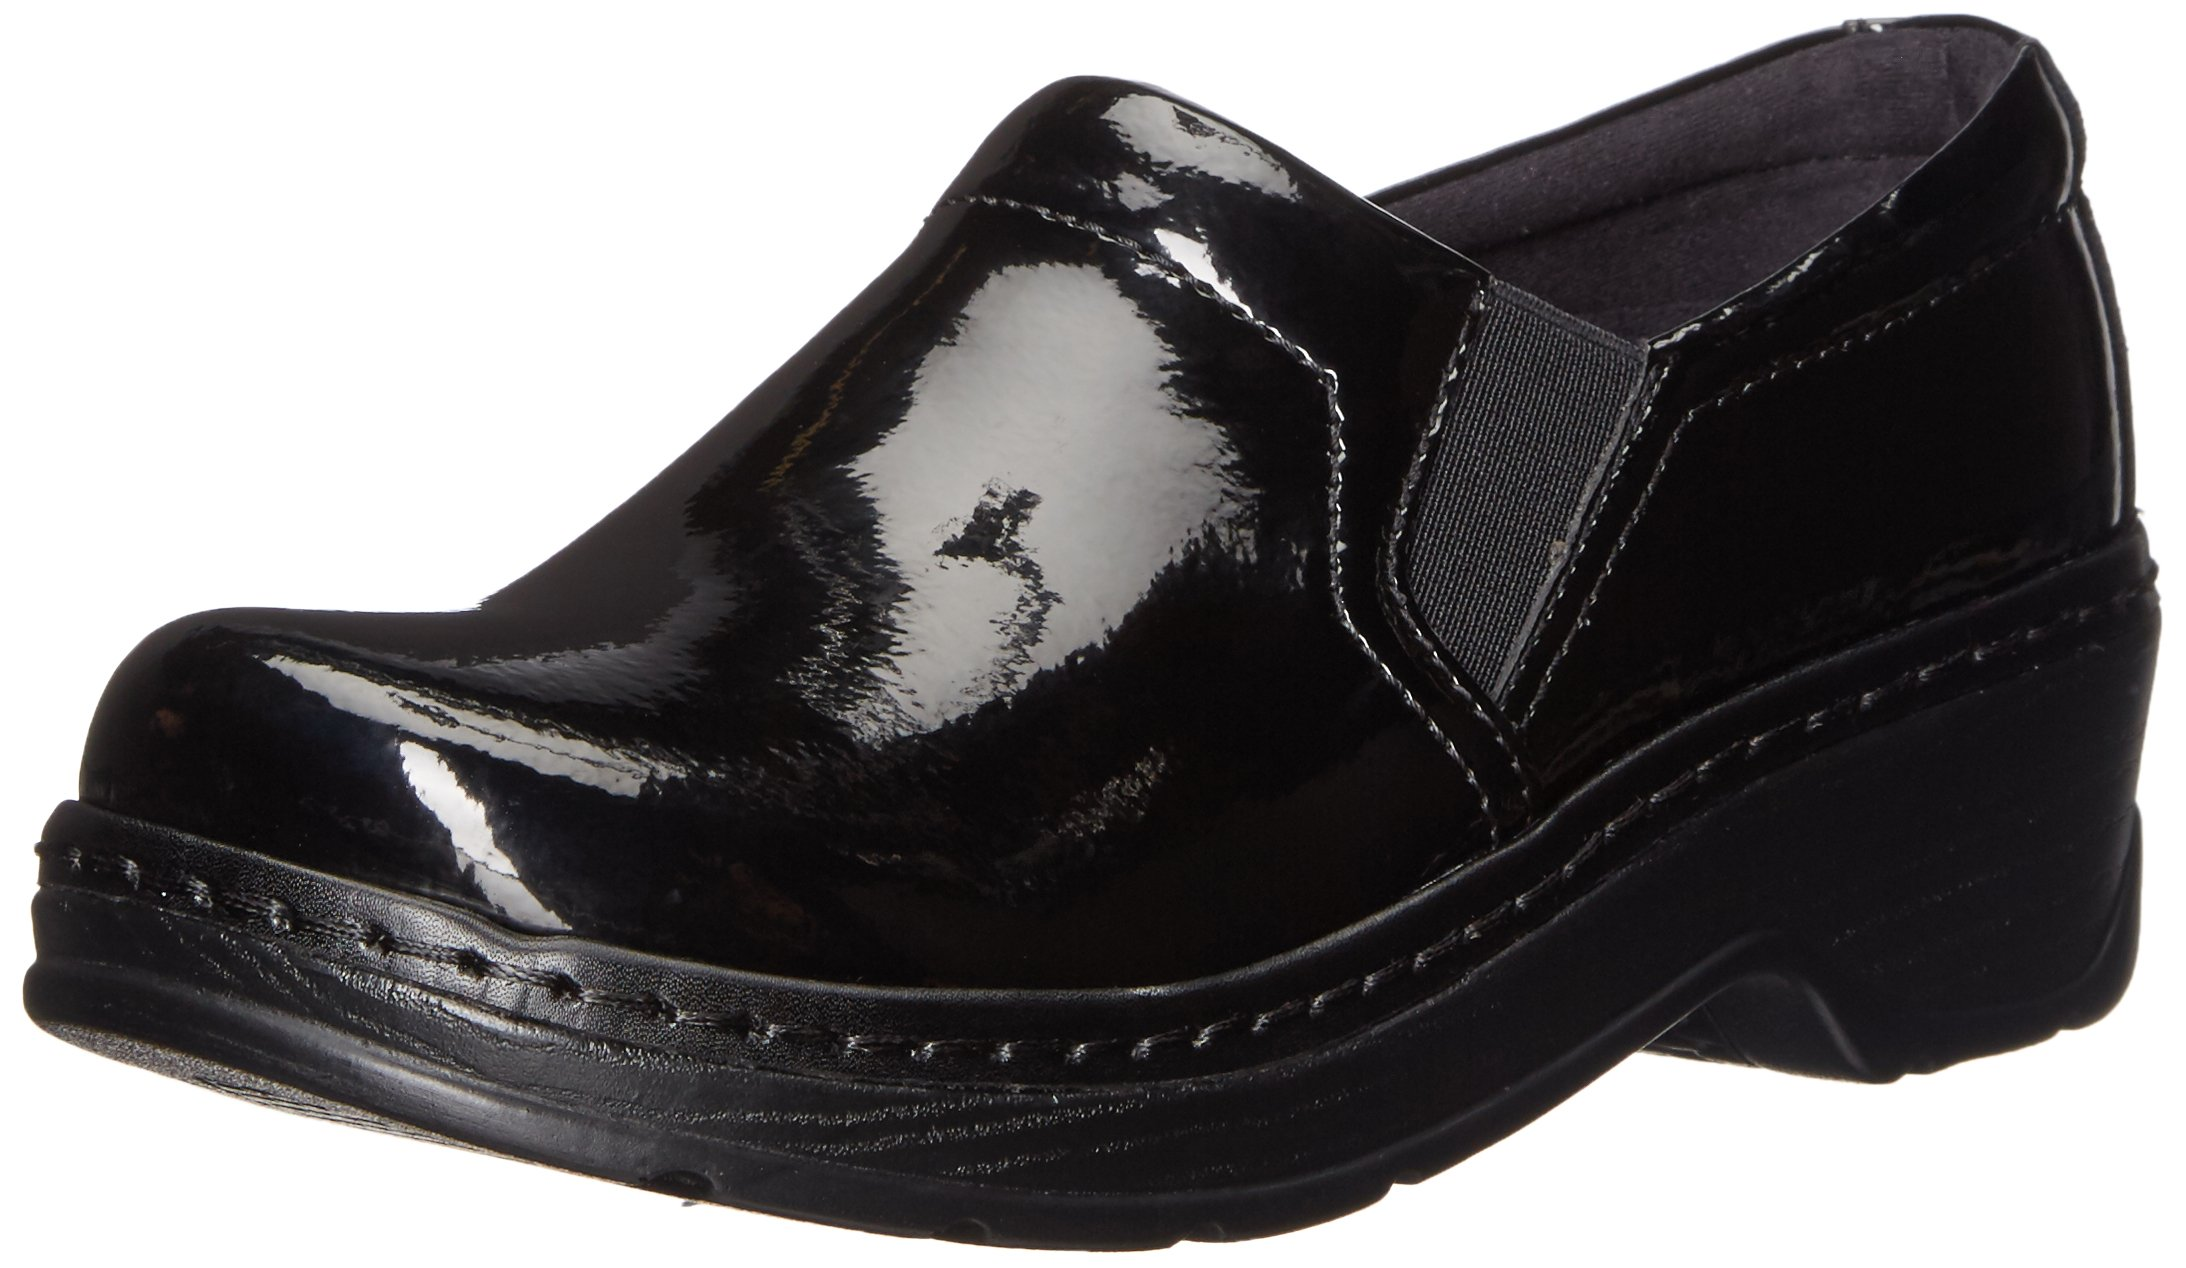 Klogs USA Women's Naples Mule, Black Patent, 8.5 M US